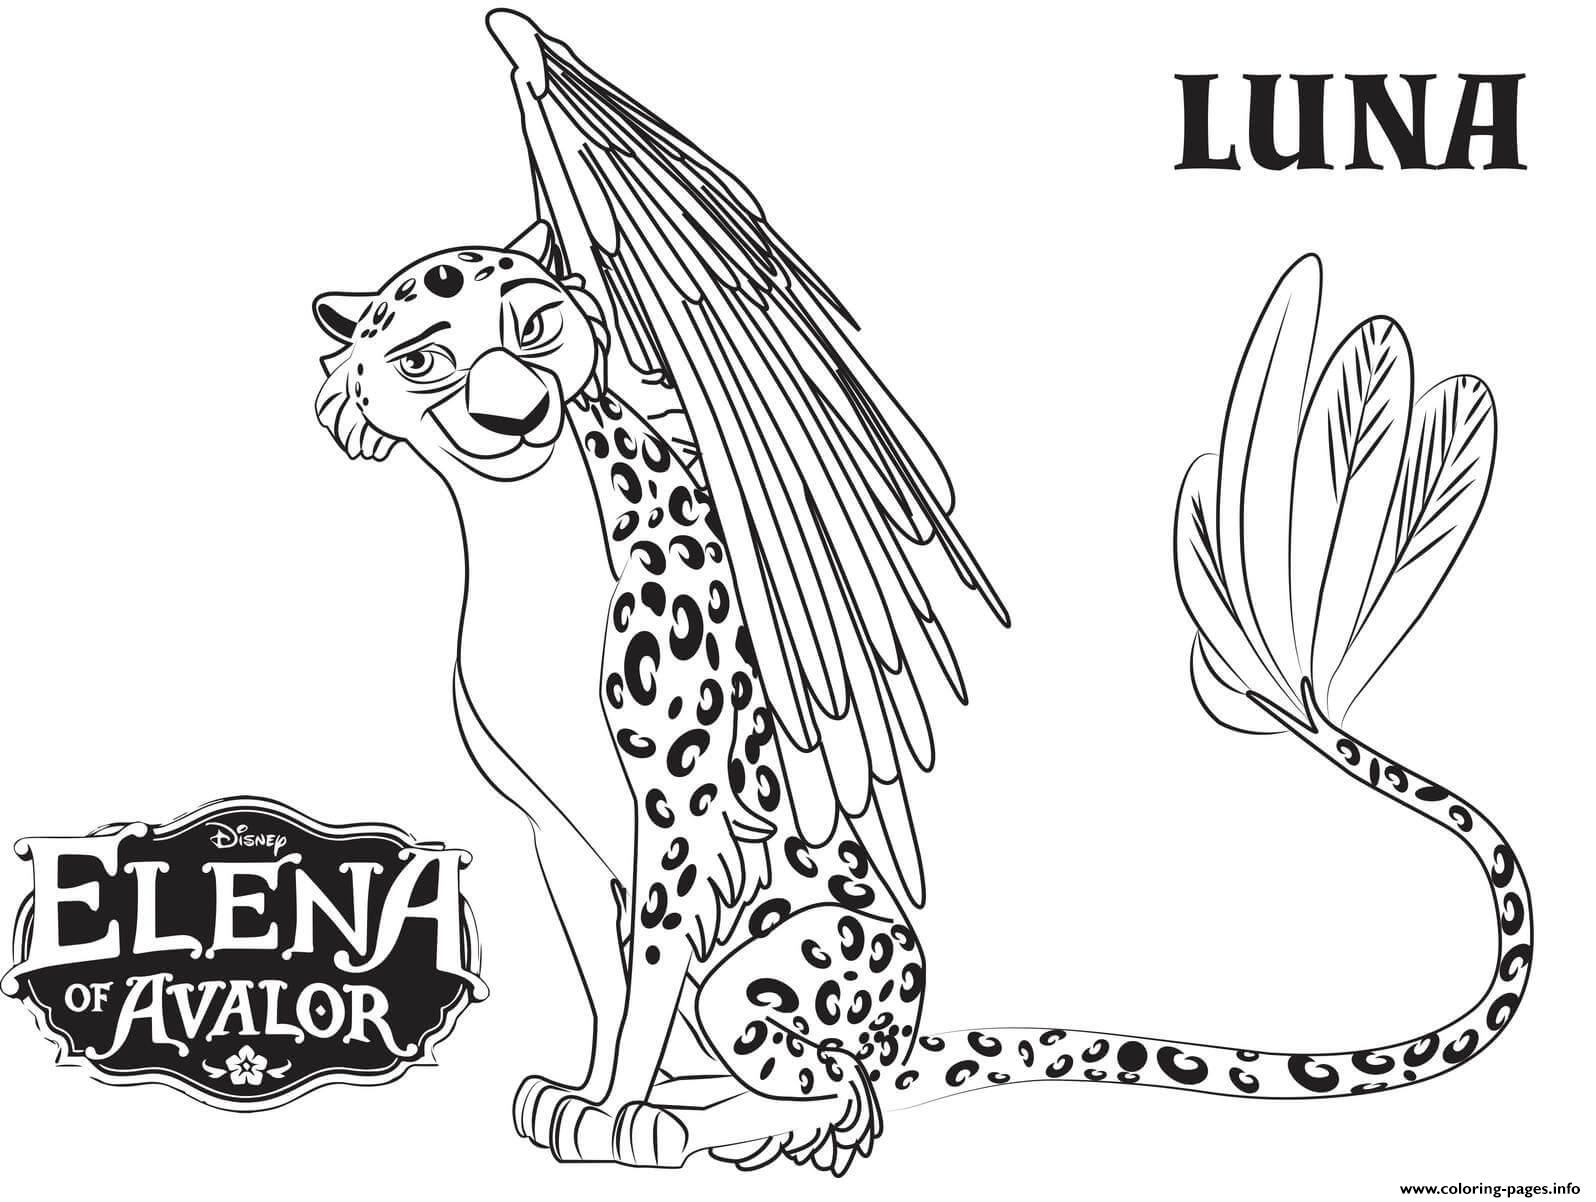 elena of avalor luna coloring pages - Elena Coloring Pages